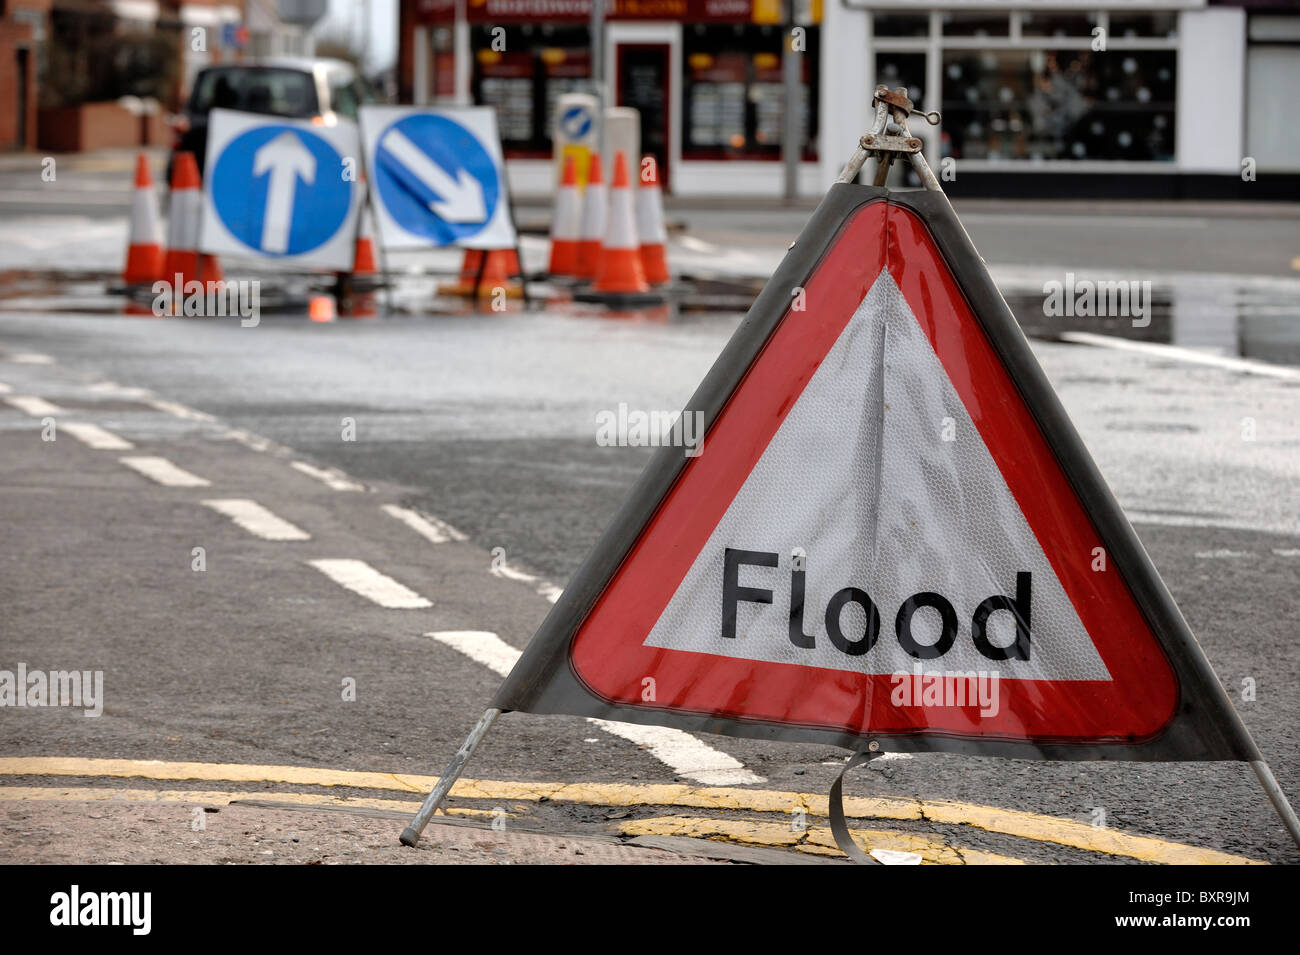 Flood road sign - Stock Image